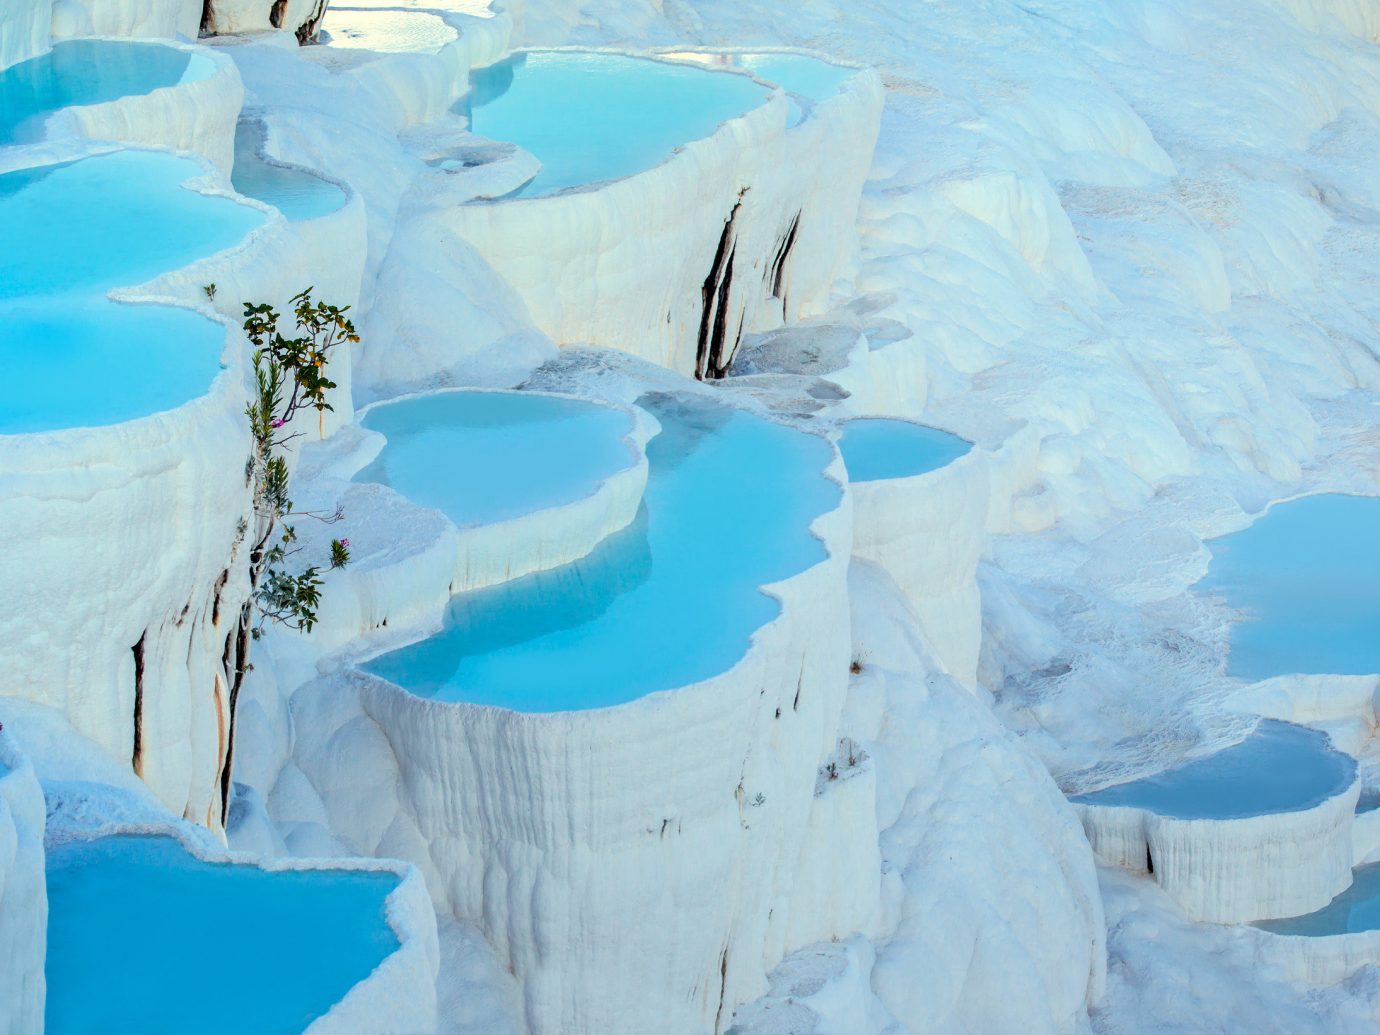 Trip Ideas snow Nature blue ice Winter ice cave season freezing arctic polar ice cap ice cap glacial landform glacier iceberg arctic ocean